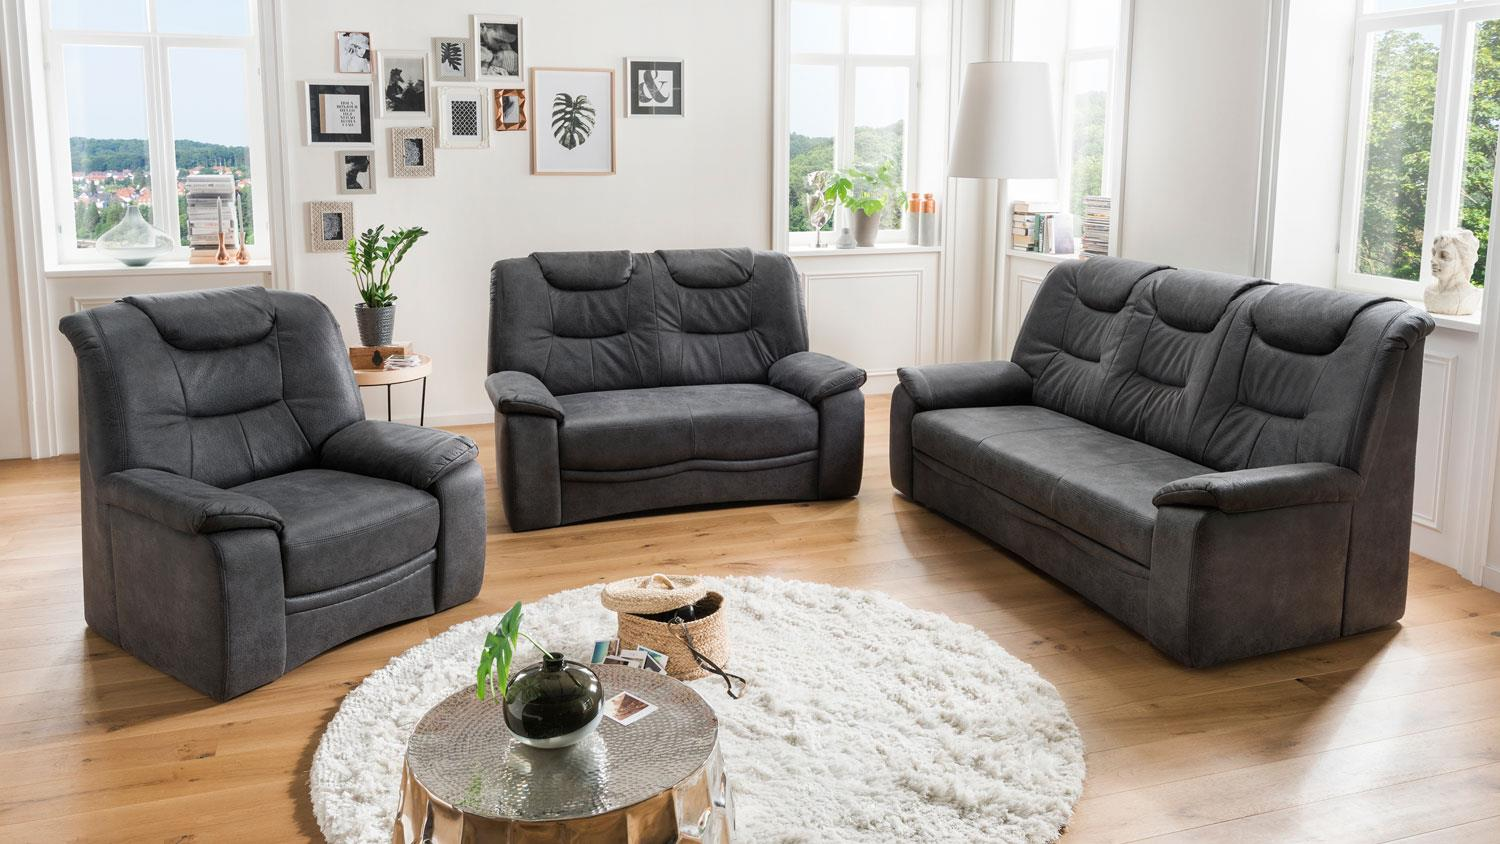 Couch Federkern 3-sitzer Grande Sofa Couch In Stoff Dunkelgrau Inkl